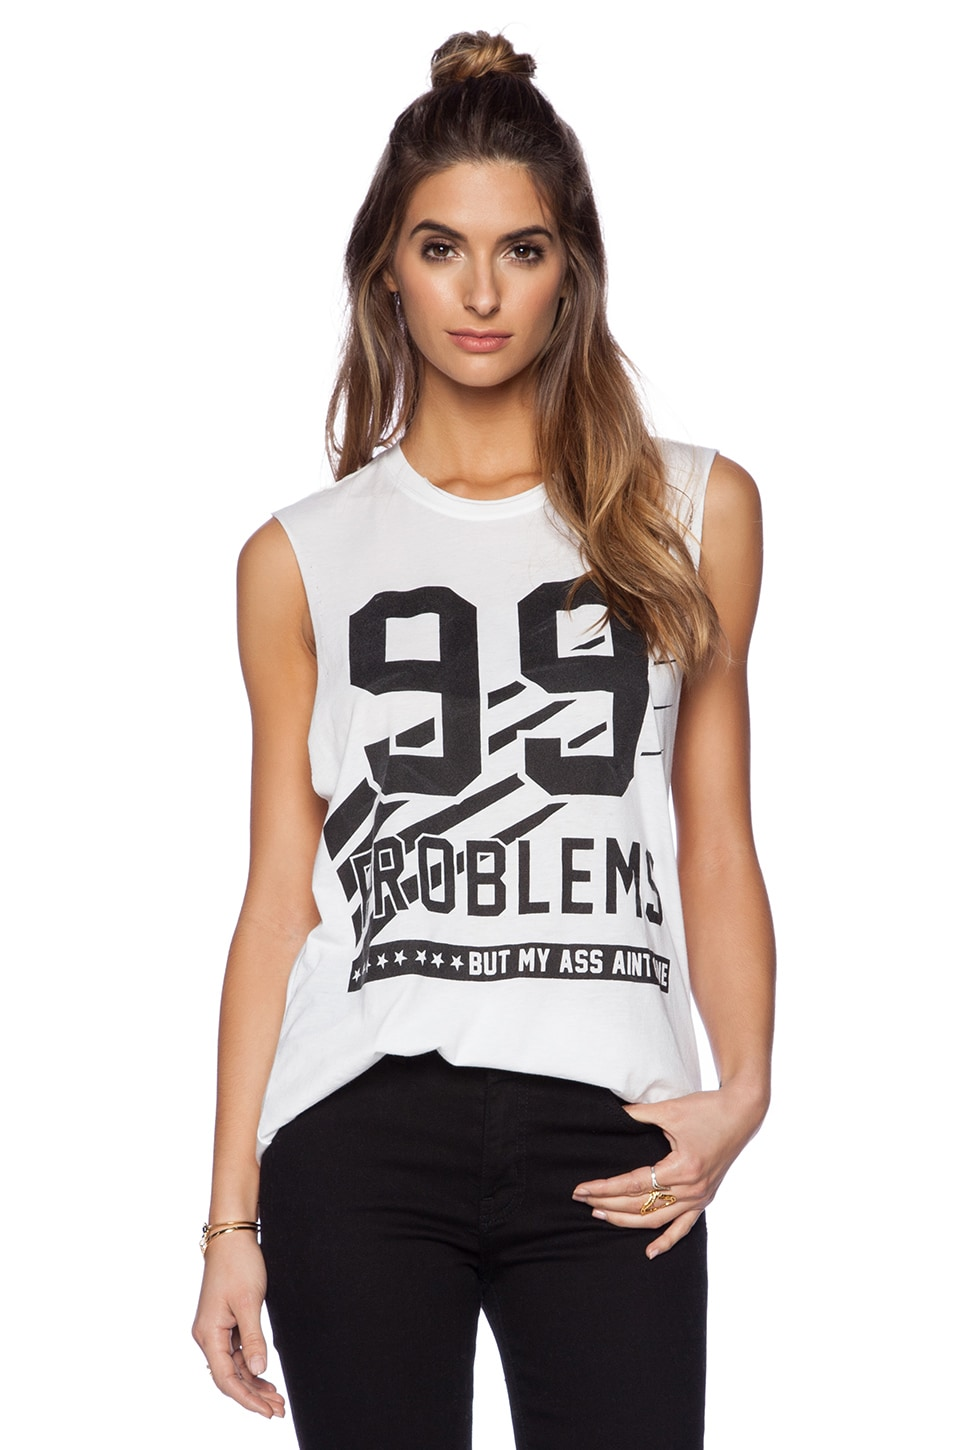 The Laundry Room T-SHIRT SANS MANCHES 99 PROBLEMS